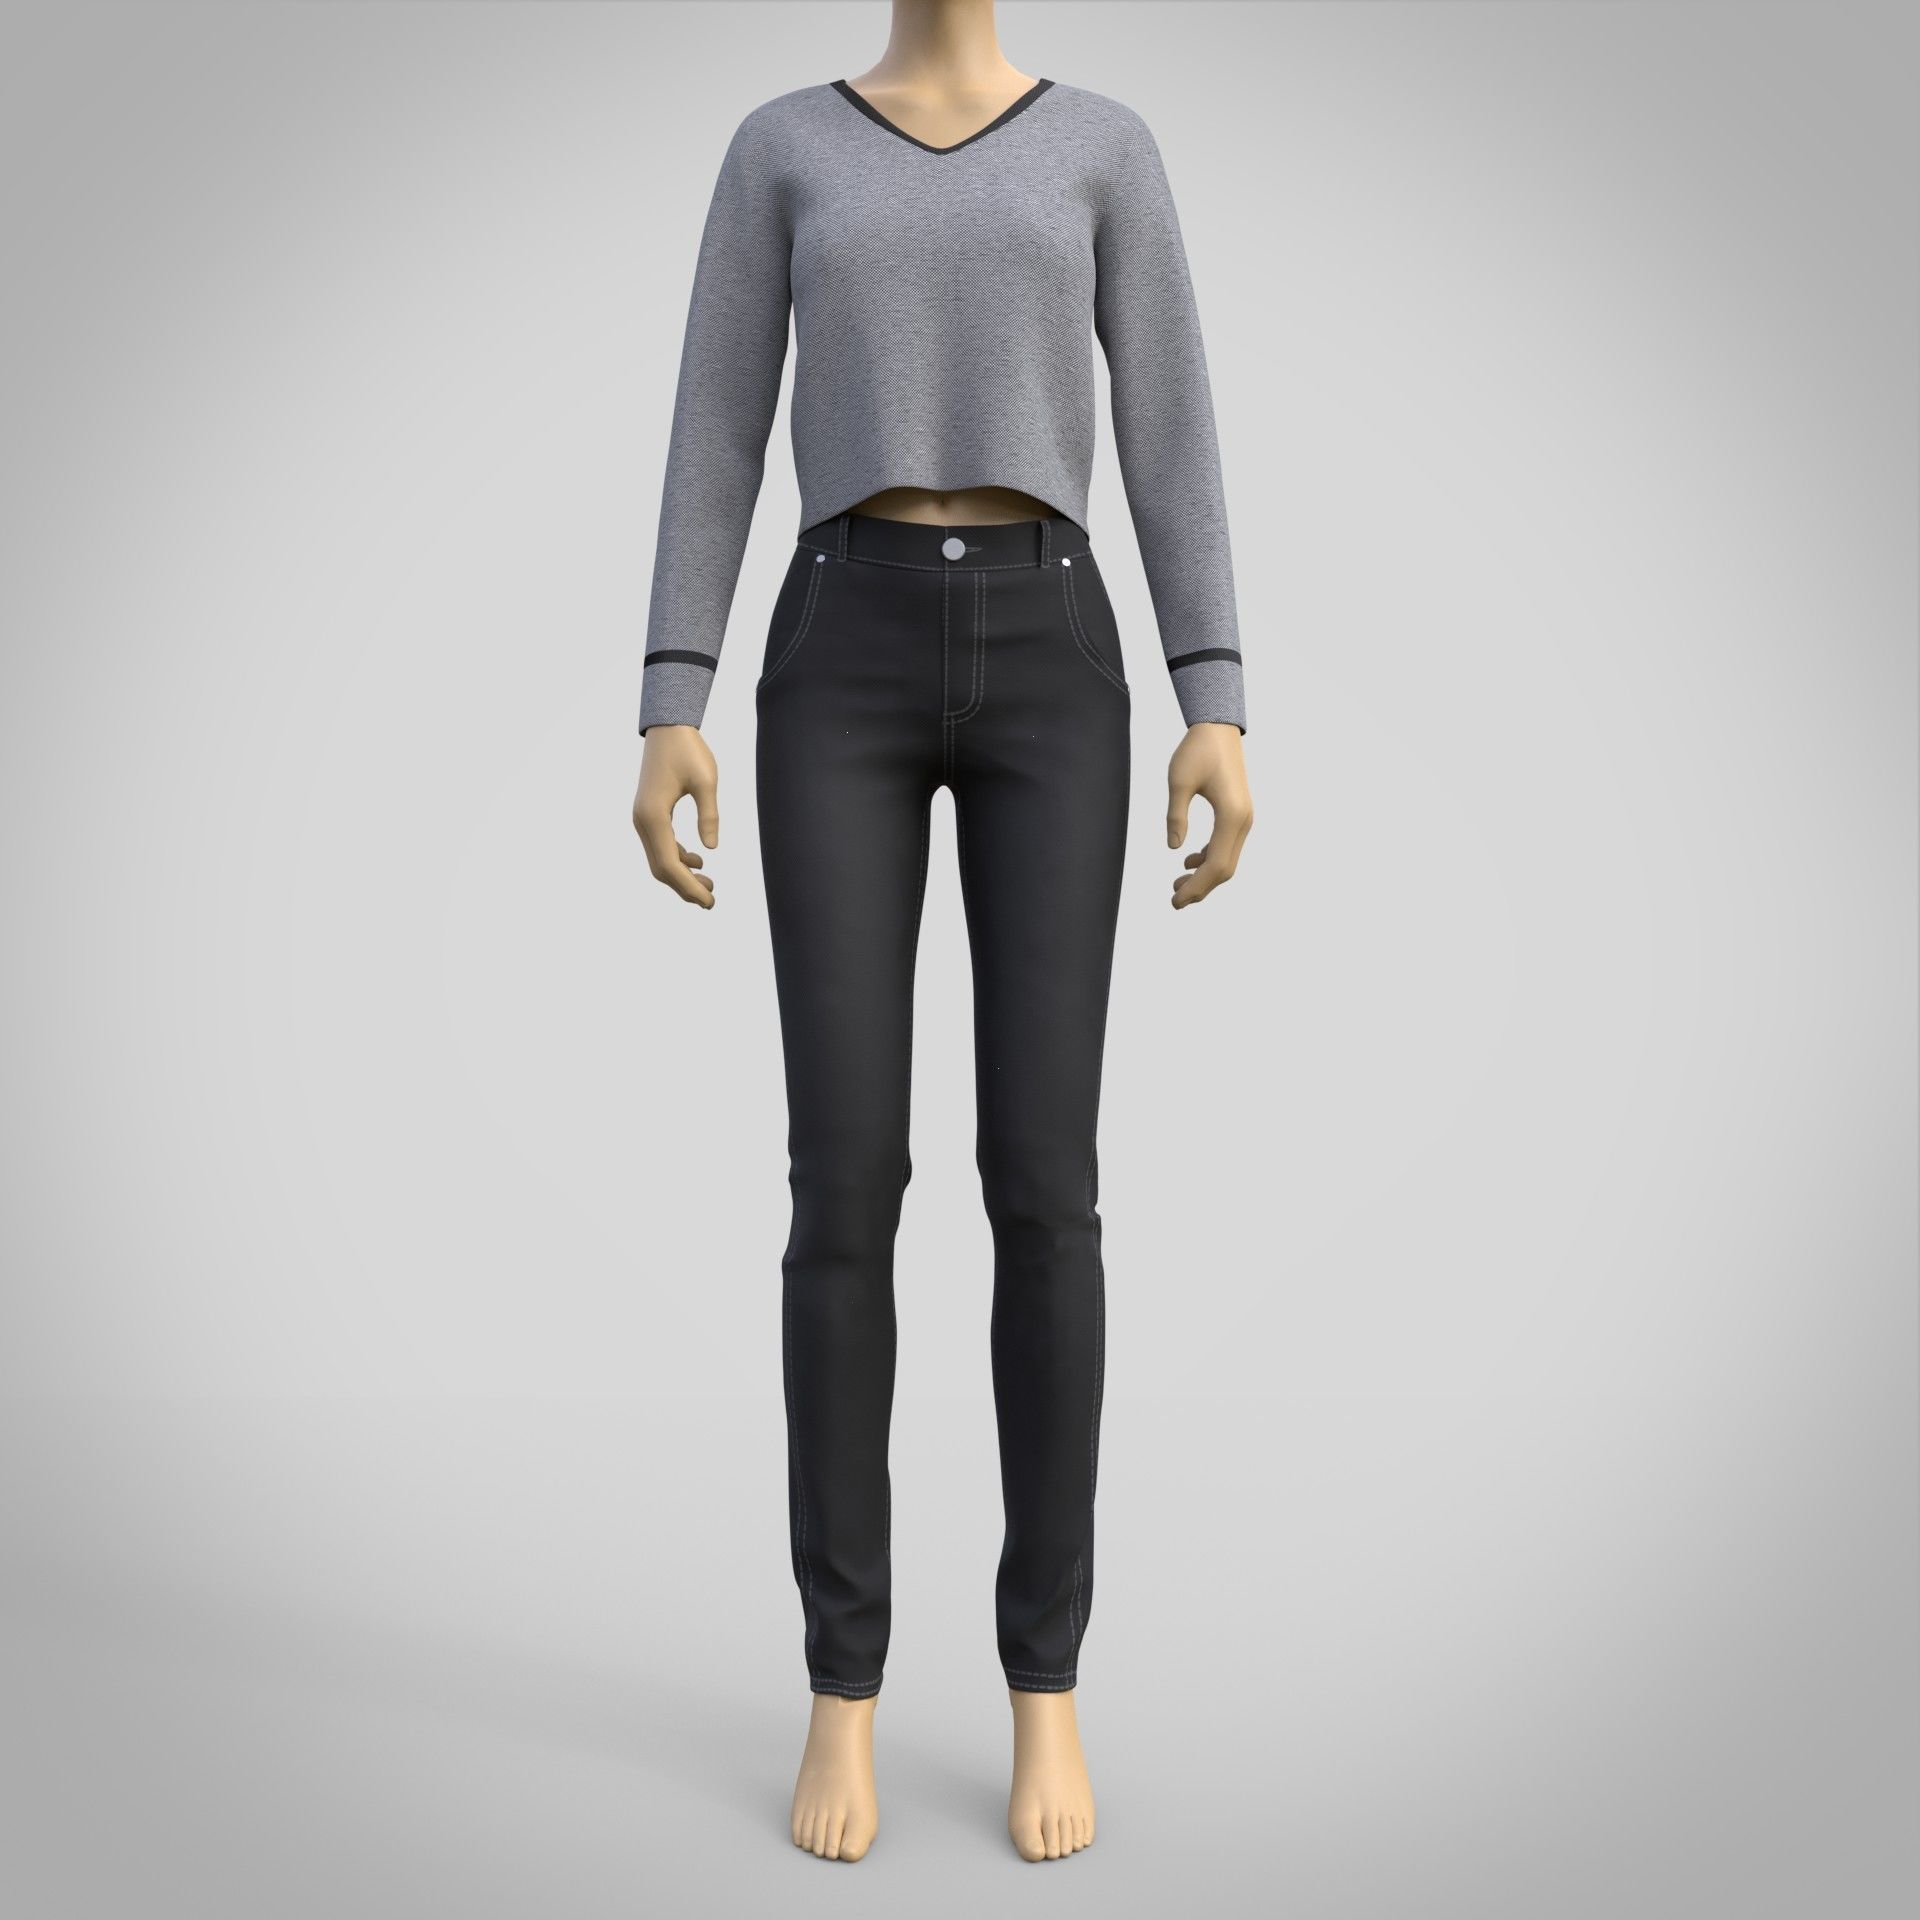 casual outfit - denim pants and sweater